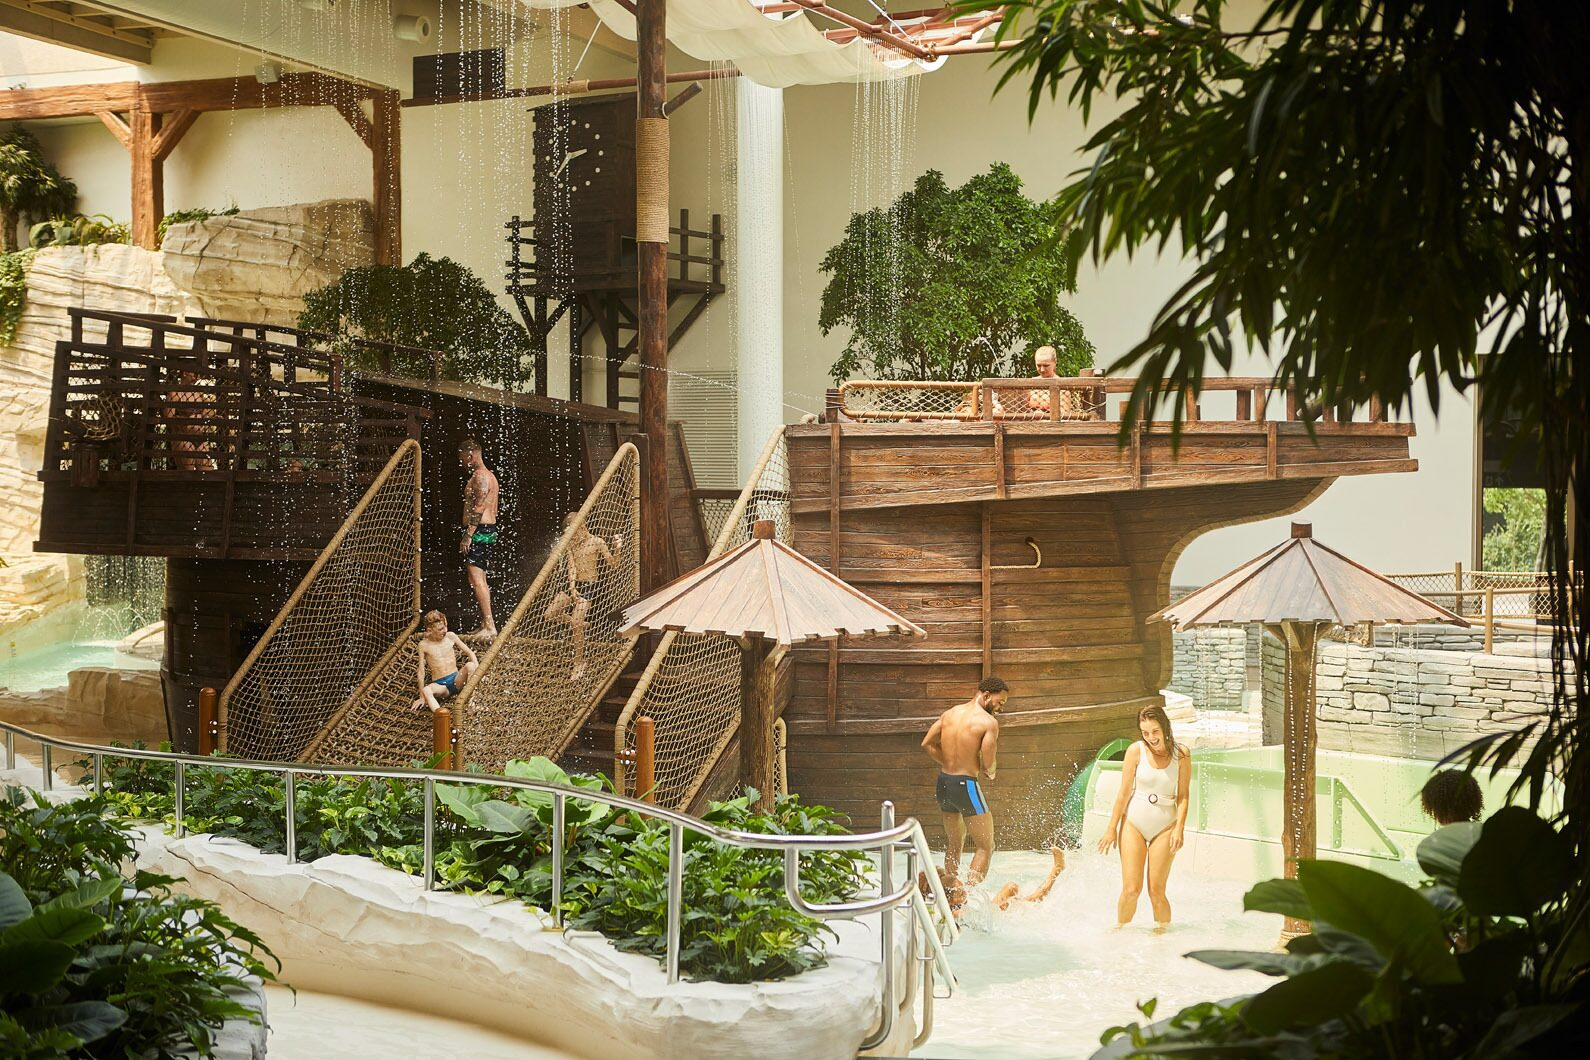 Bellewaerde Aquapark Package Deal